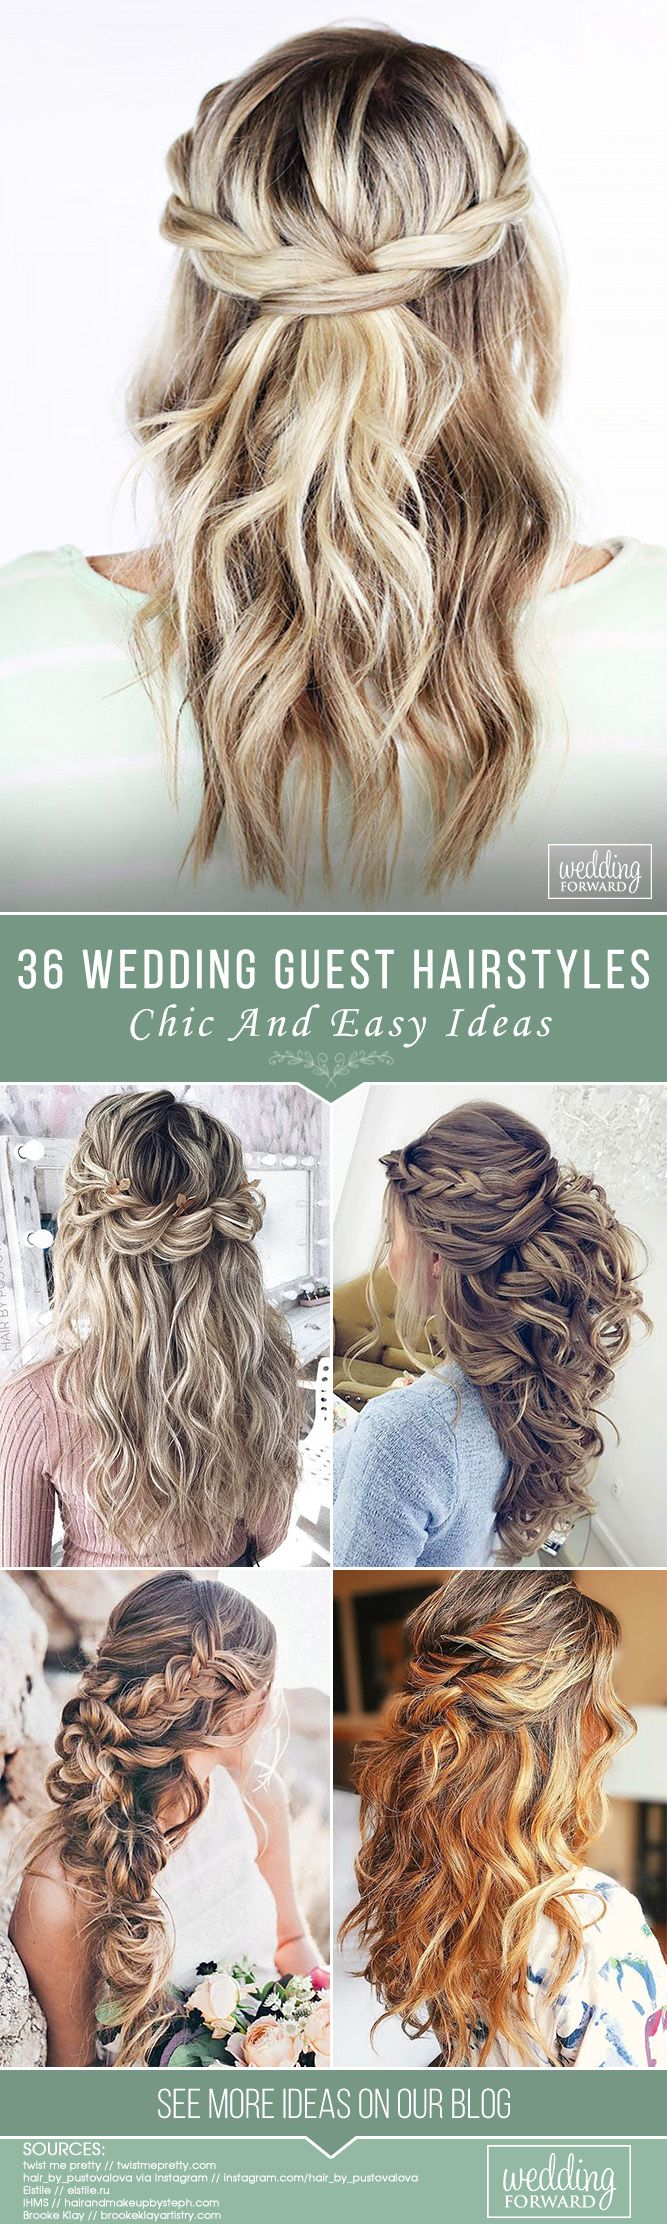 chic and easy wedding guest hairstyles wedding guest hairstyles